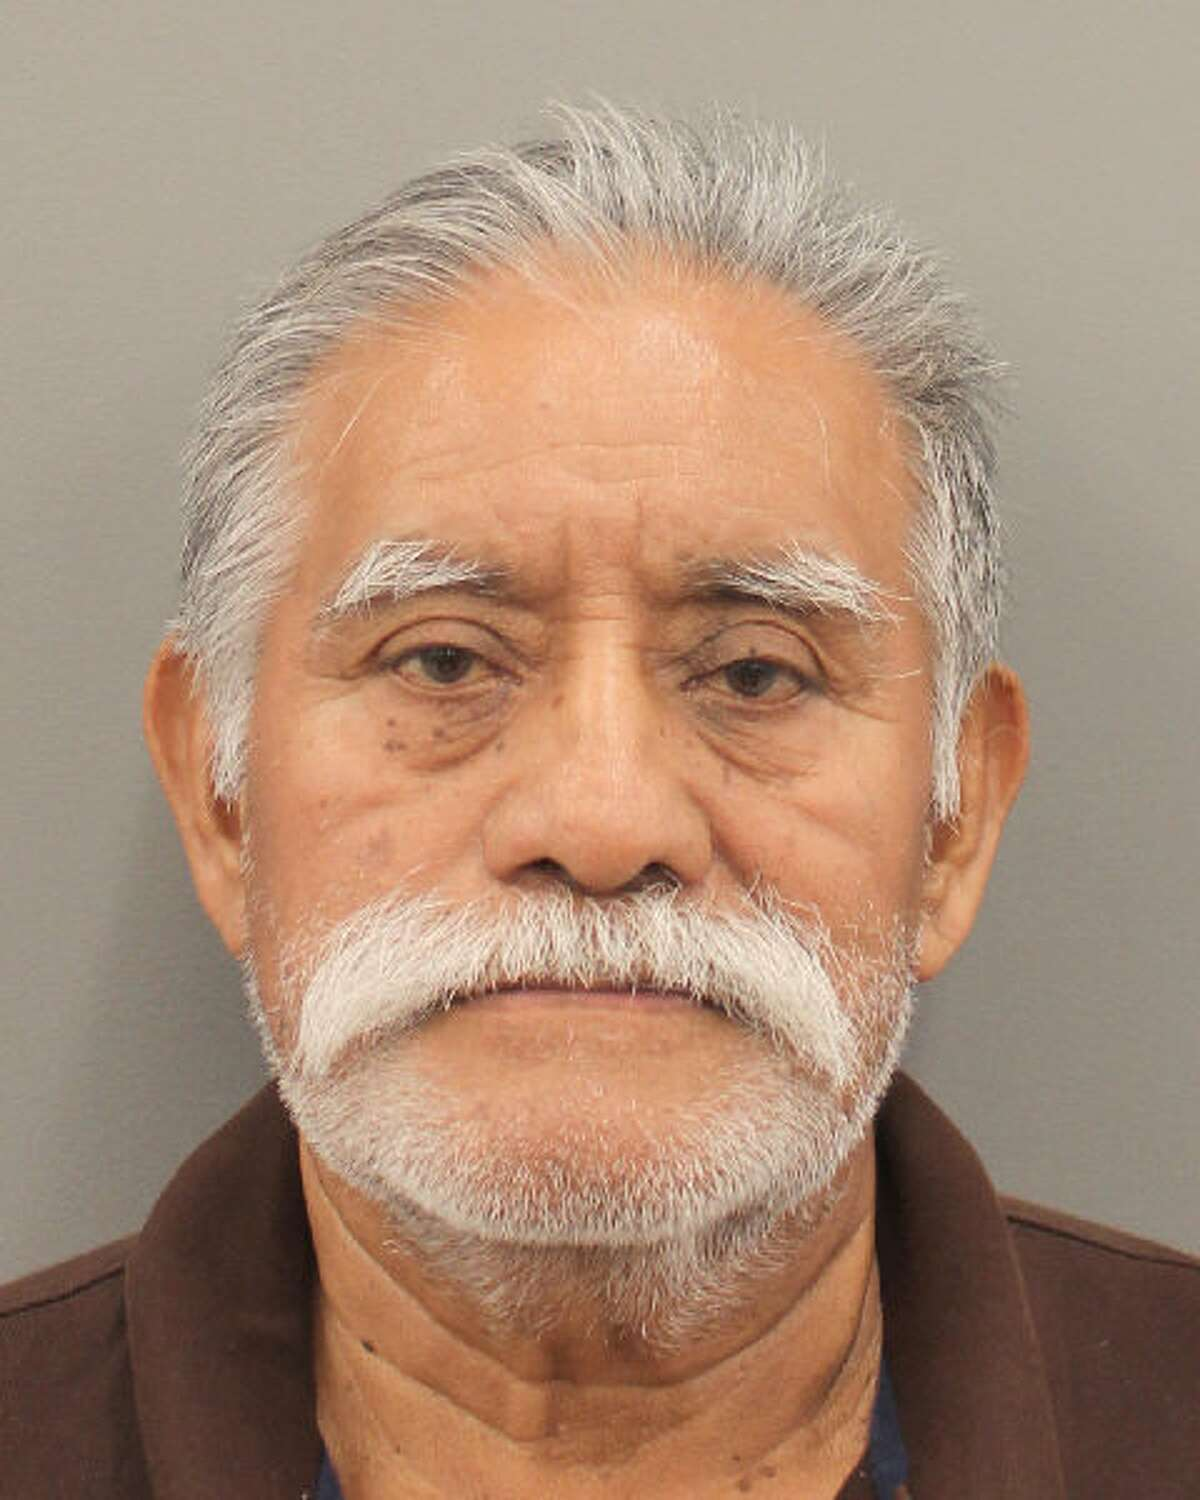 Abel Cruz, 77, was charged with murder in the shooting death of Jesus Cejudo, 27, at 4100 Beran Drive on Sept. 2, 2019.